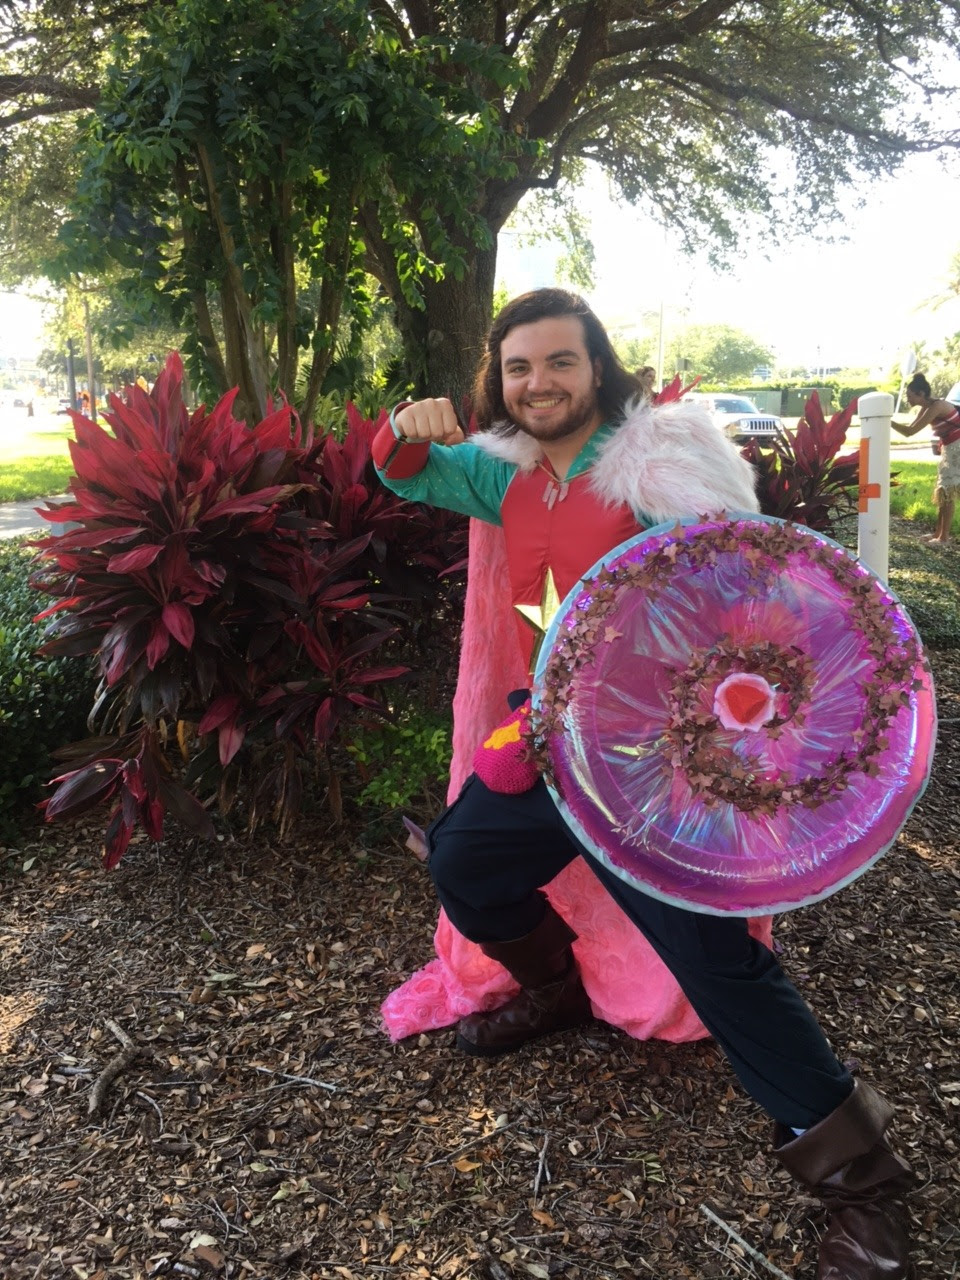 Cosplay: Battle-Ready Steven from Steven Universe! Con: MegaCon 2017 I tried to come up with armor Steven would wear once he's older and can go on more dangerous missions with the Crystal Gems...